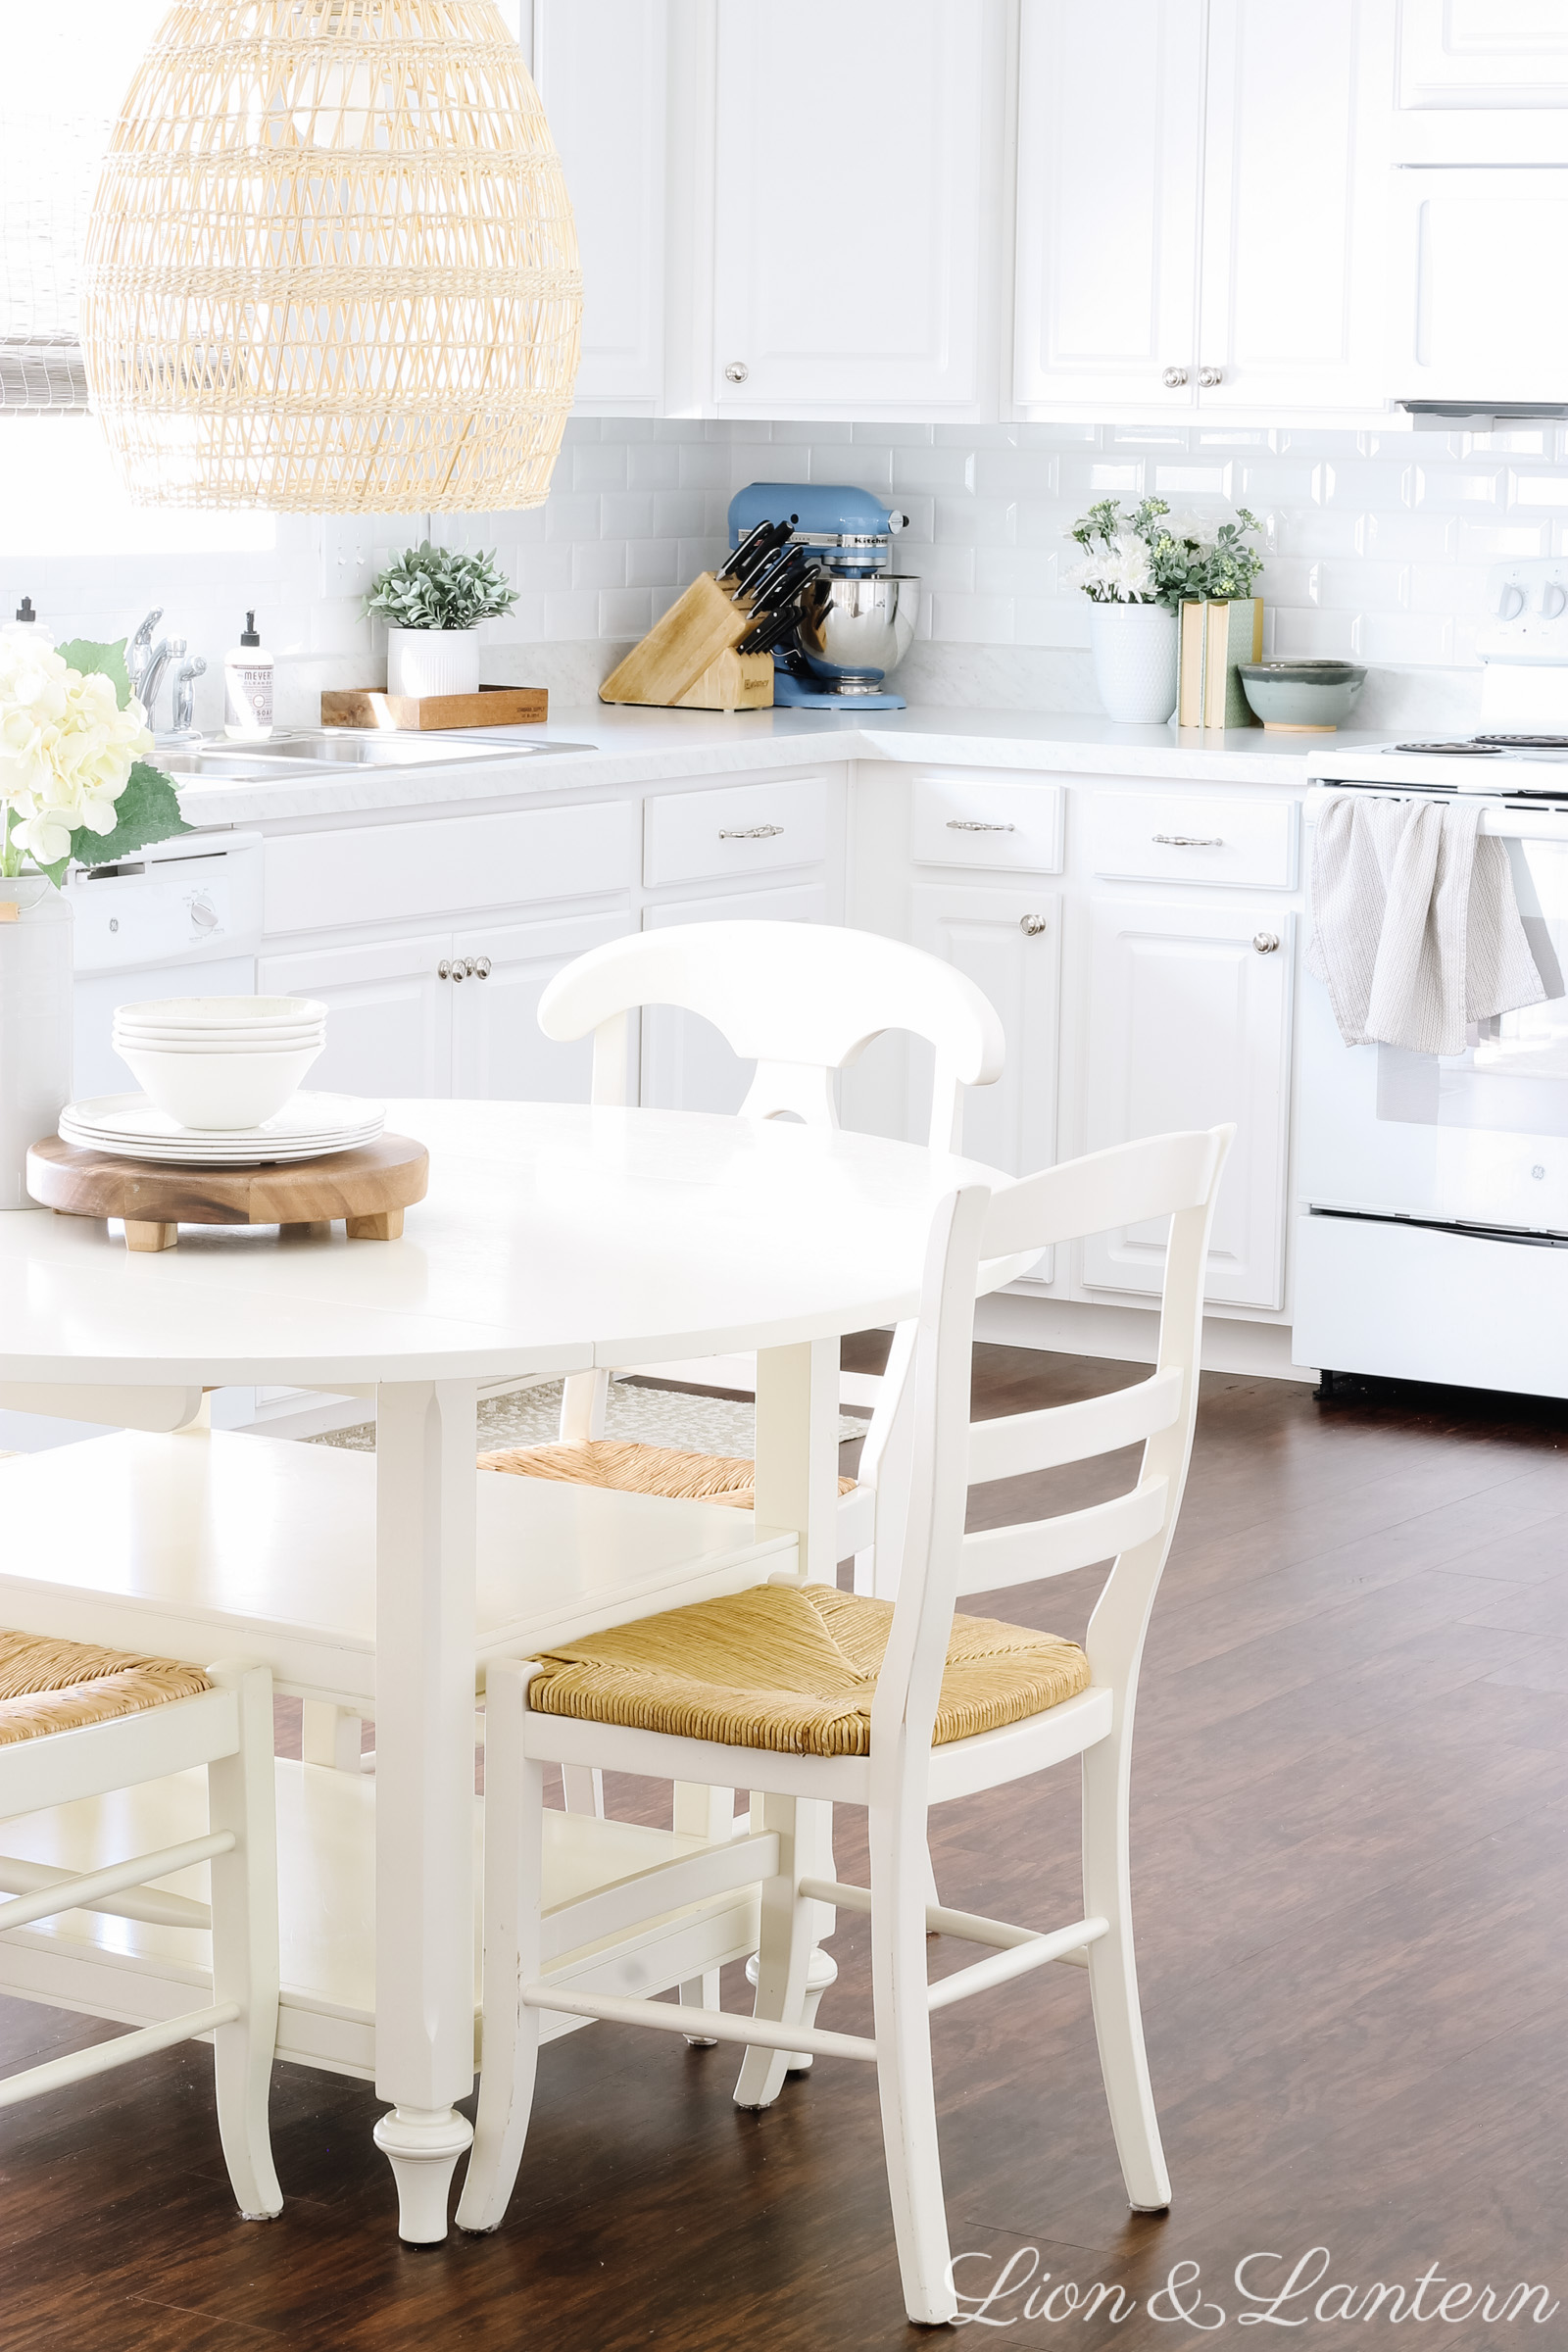 Spring Home Tour 2019 at LionAndLantern.com | vintage kitchen decor, round white dining table, eucalyptus, white subway tile, budget decorating, neutral kitchen